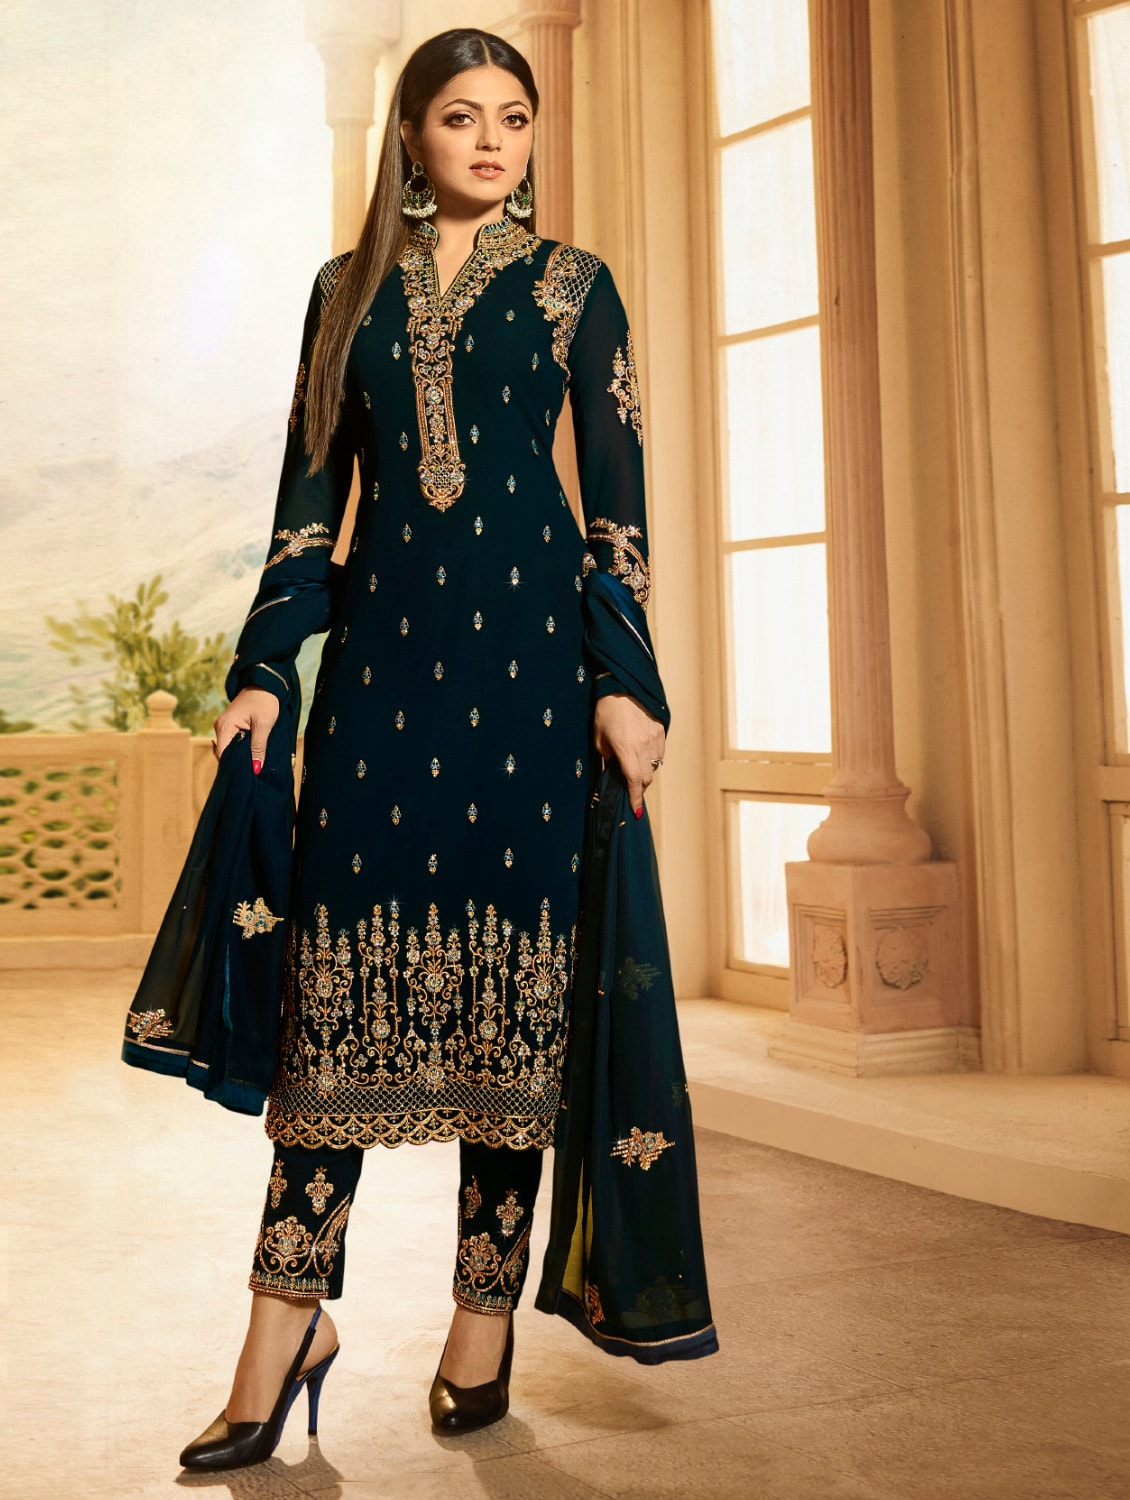 d95d78ec3f9 Buy Blue Georgette Semi-stitched Straight Pant Suit by The Fashion Attire - Online  shopping for Semi-stitched Suits in India